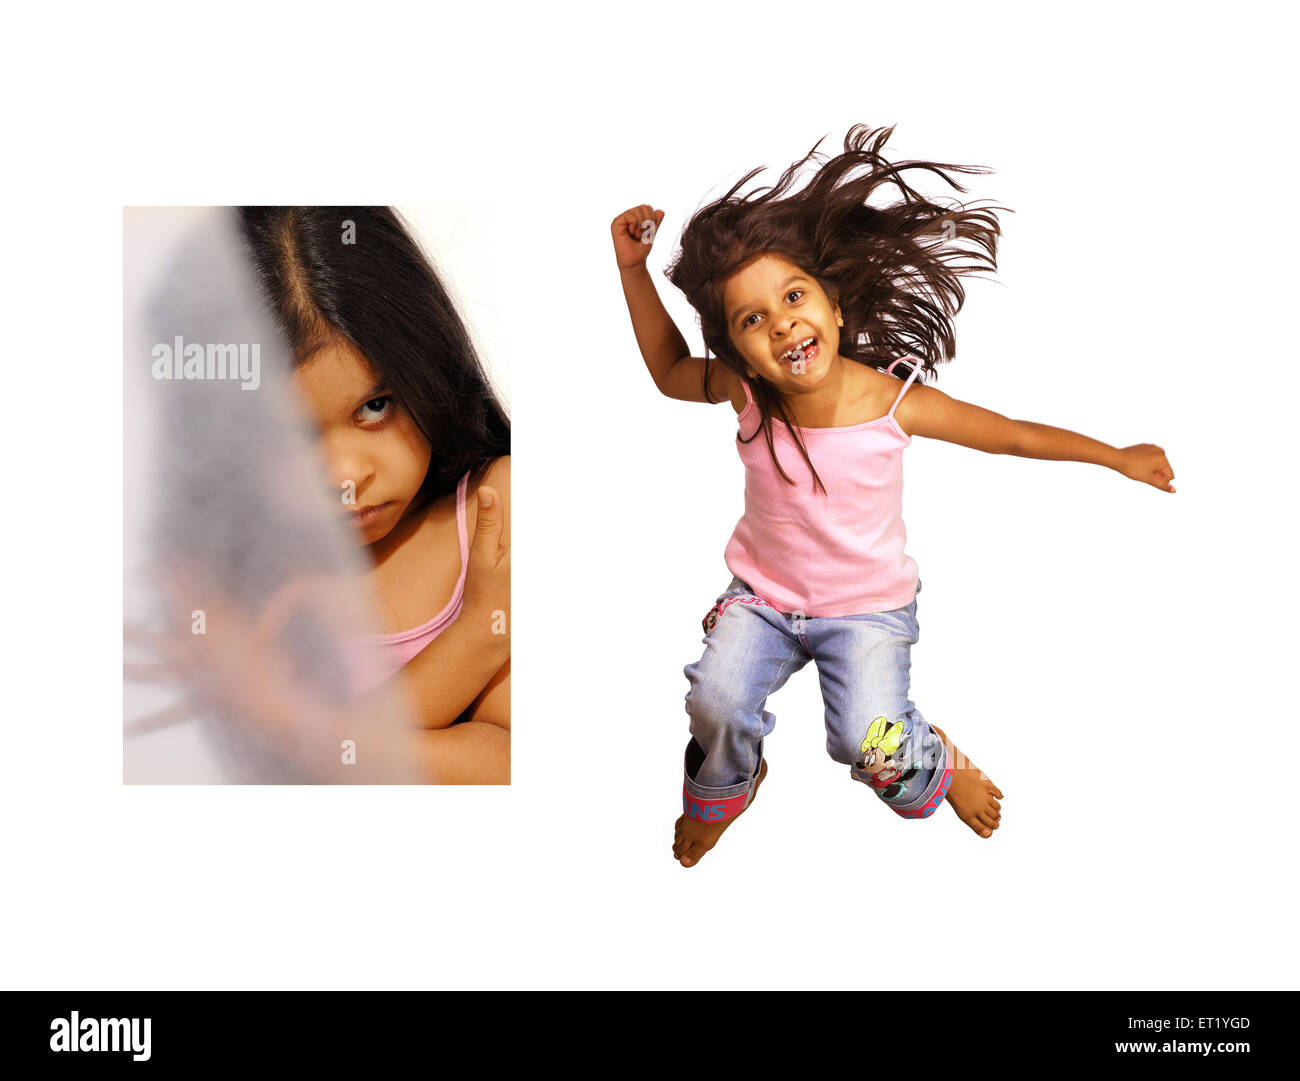 Crazy young girl MR - Stock Image